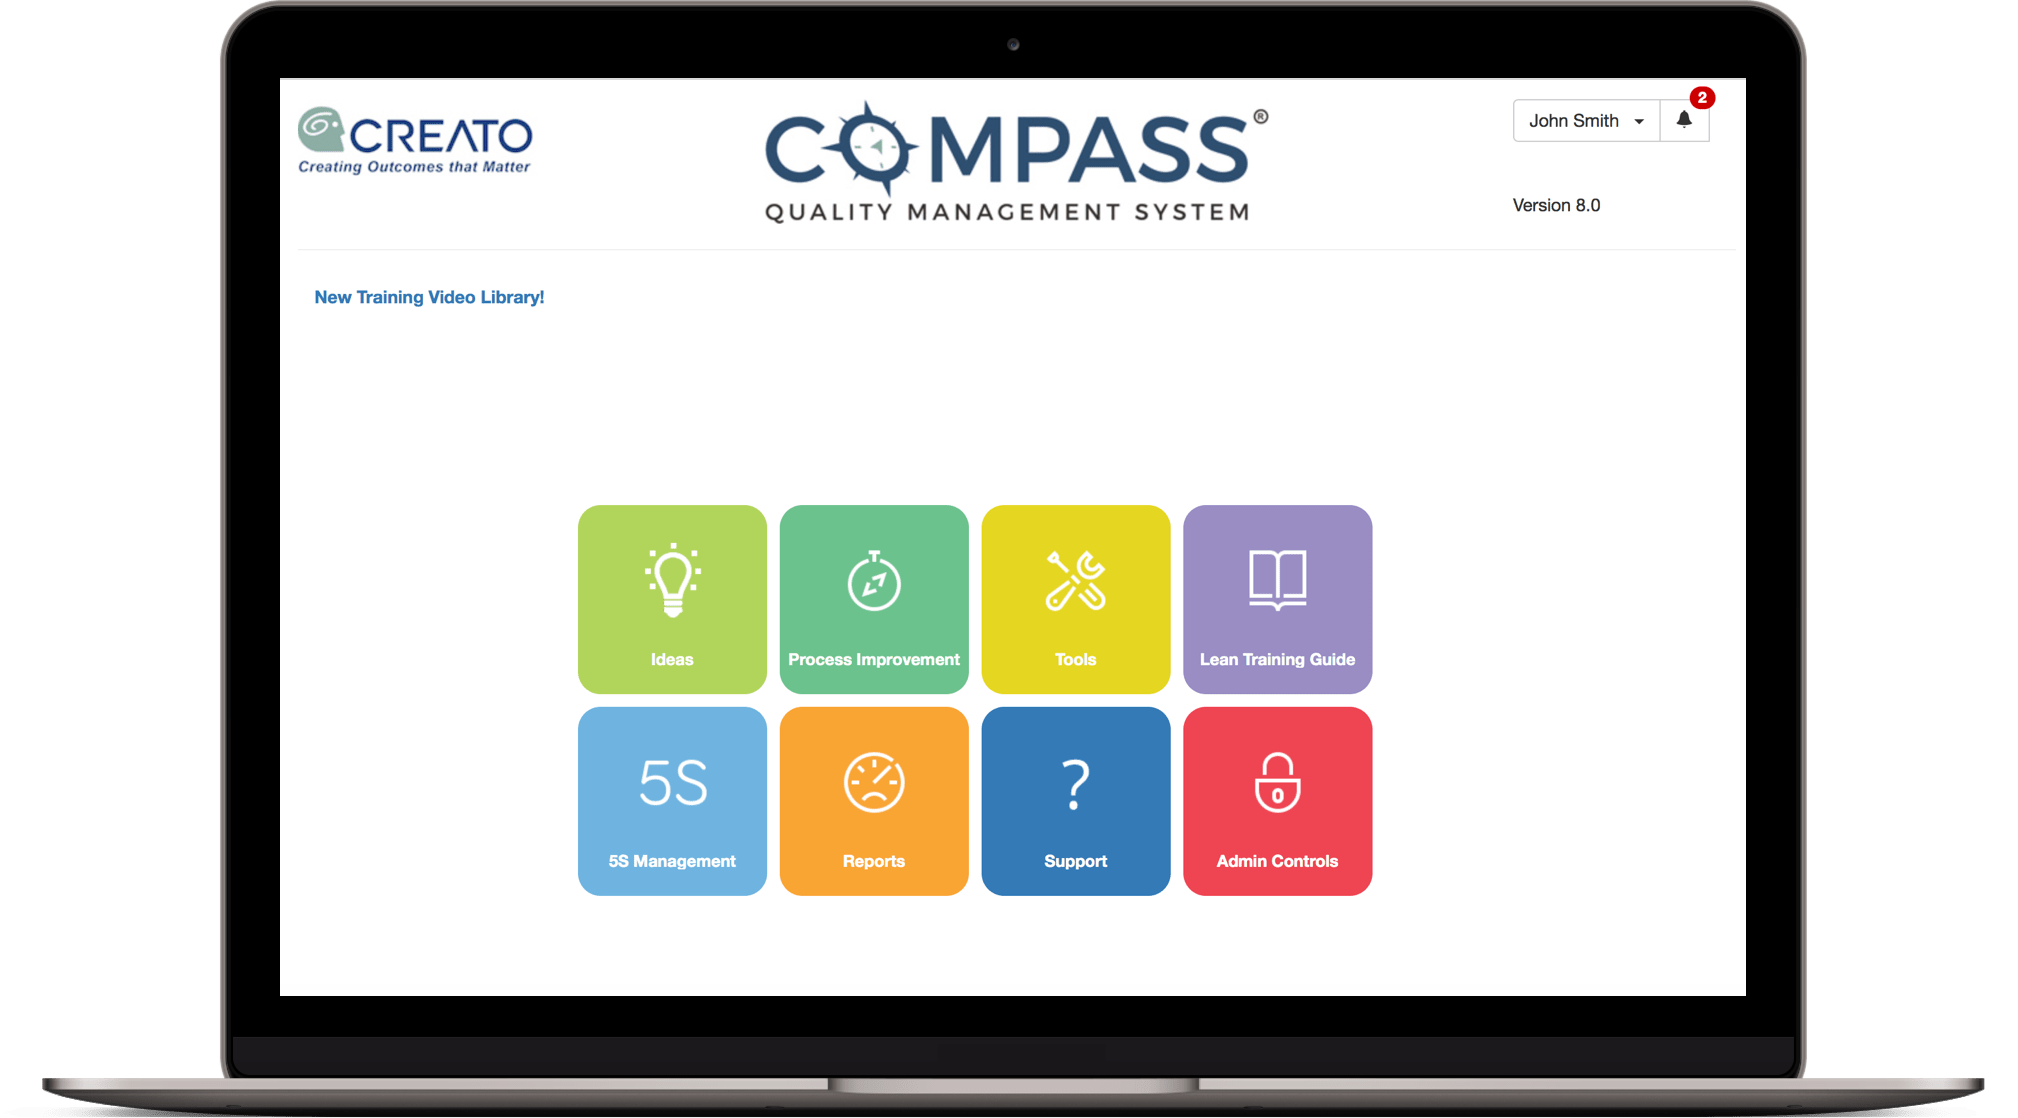 Compass Quality Management System Dashboard by Creato